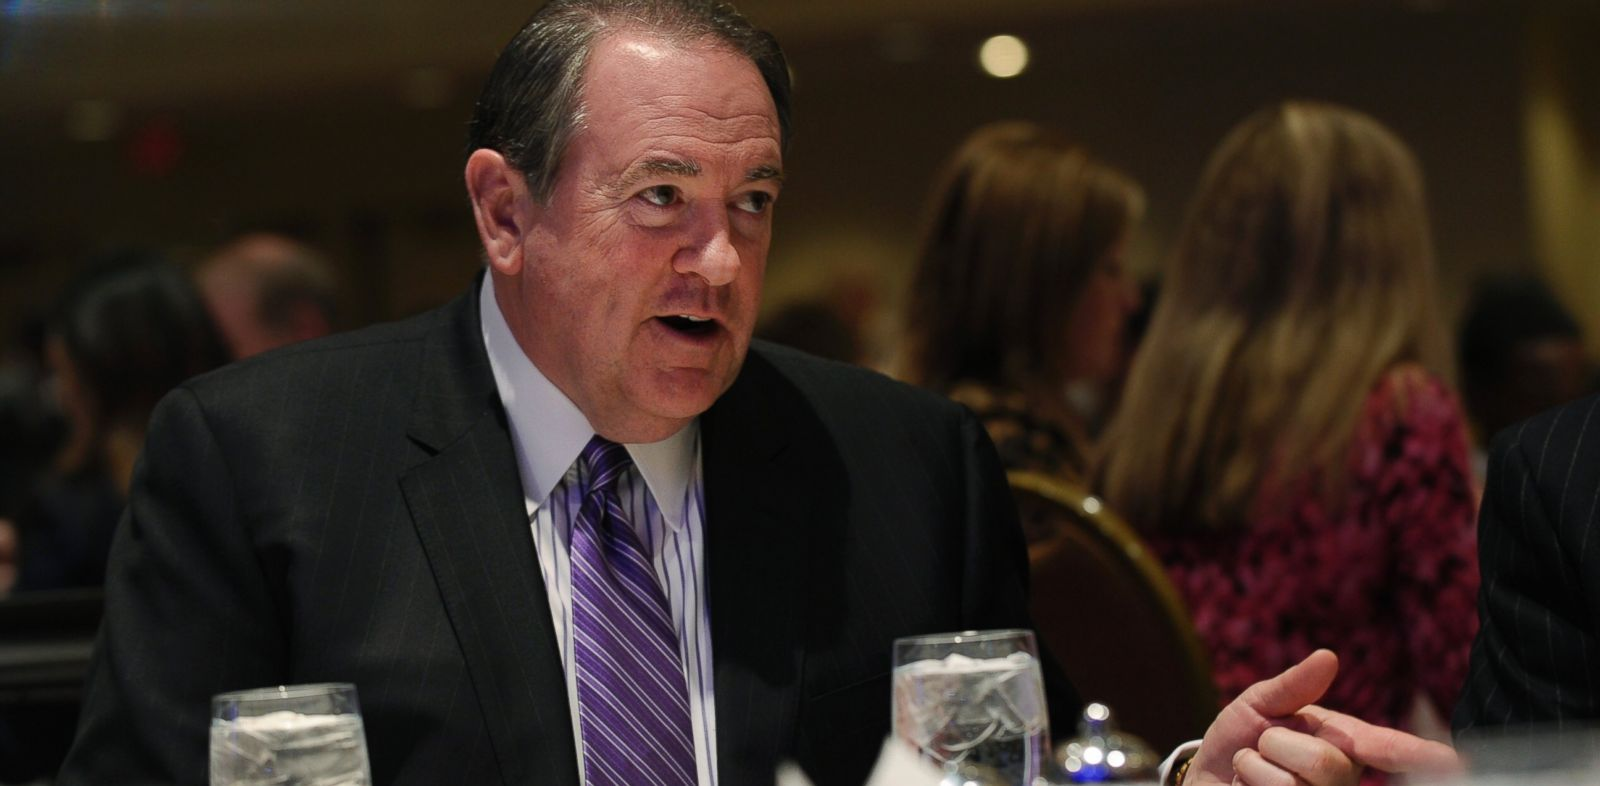 PHOTO: Former Arkansas Gov. Mike Huckabee at the Republican National Committee winter meeting